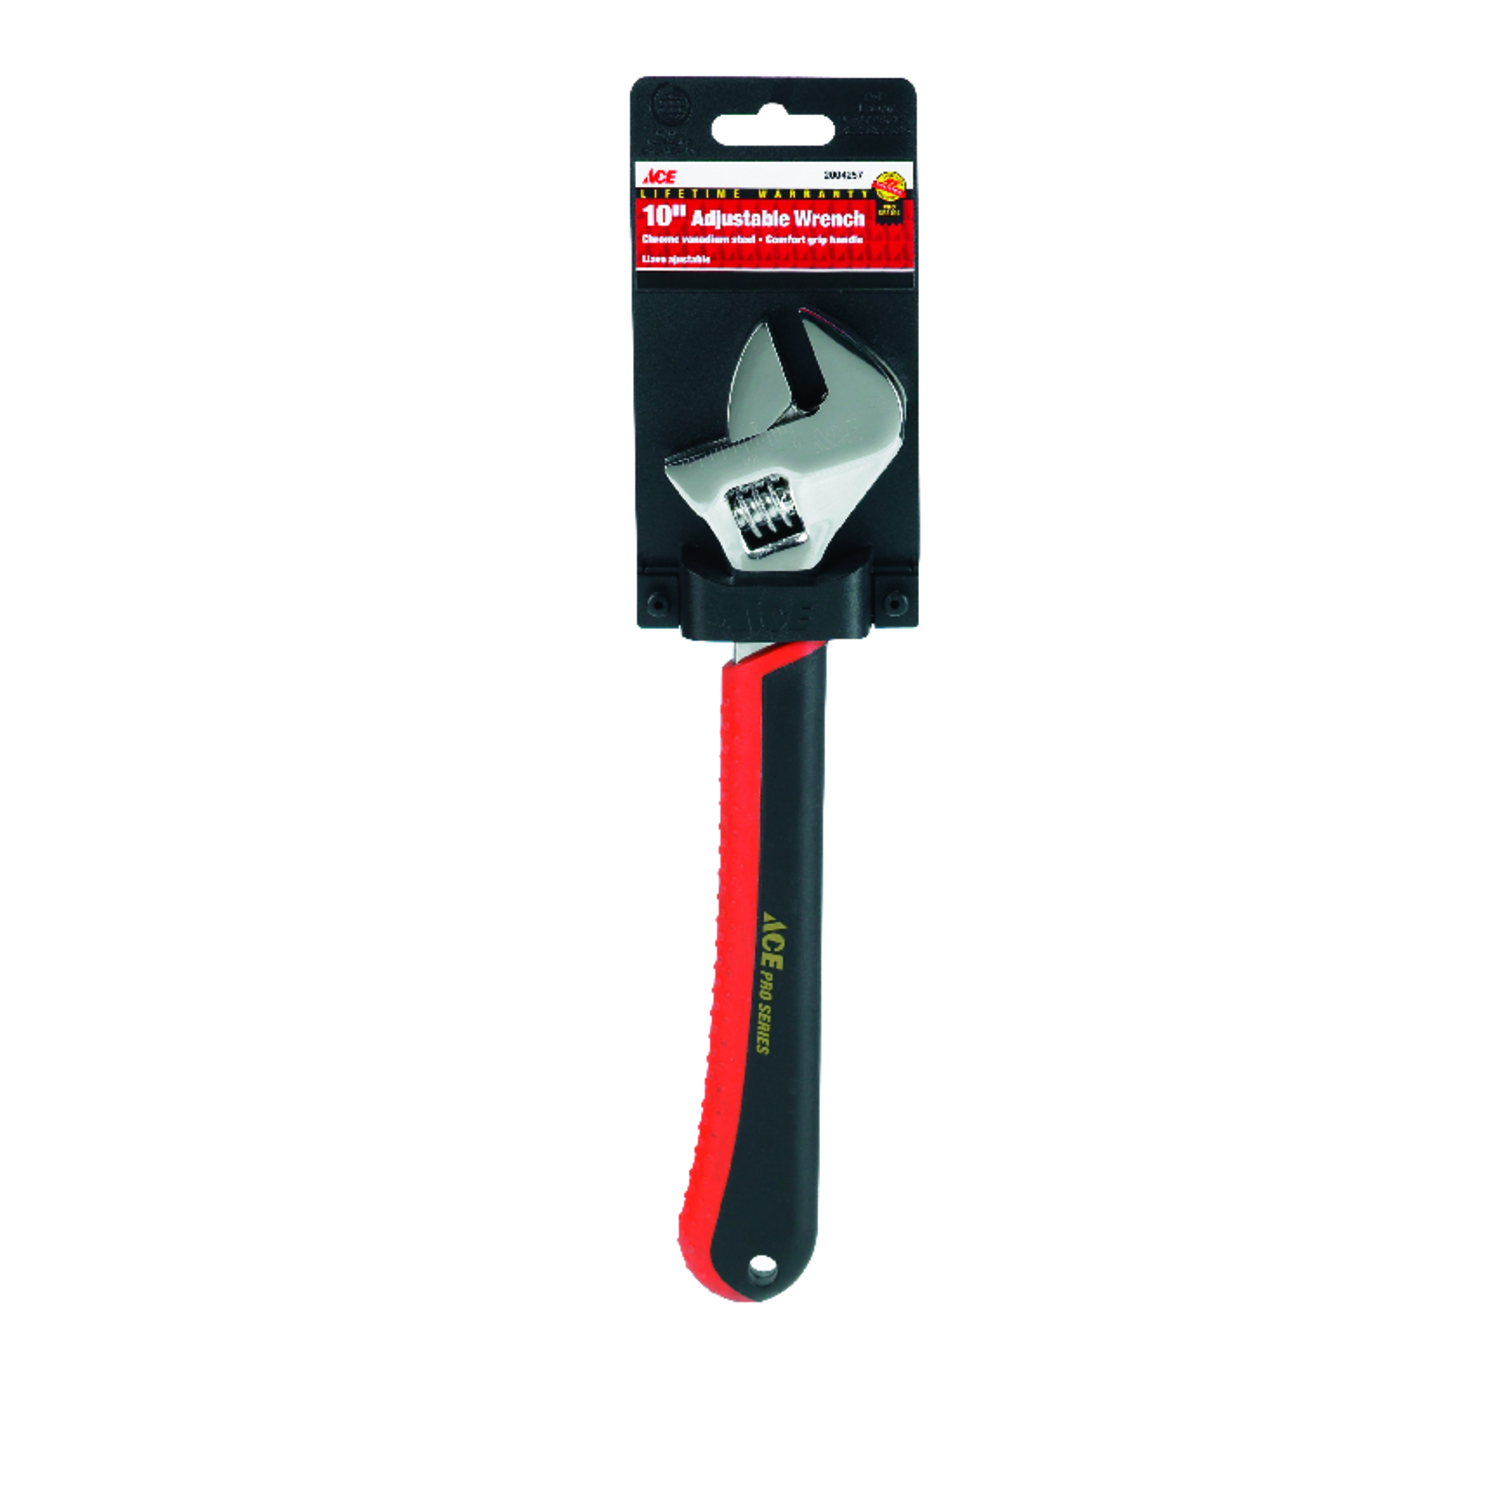 Ace  Adjustable Wrench  10 in. 1 pc.